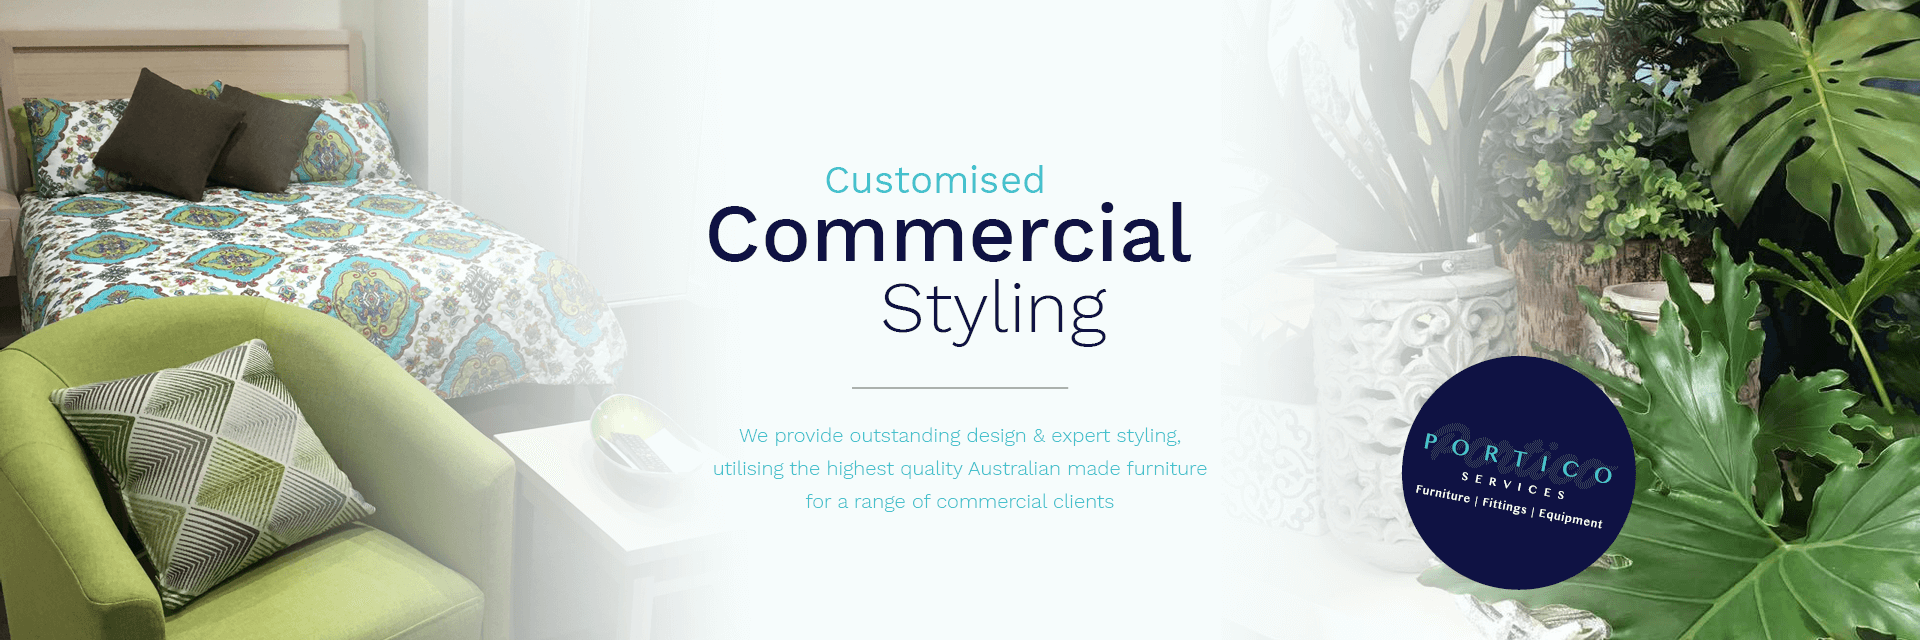 Customised Commercial Styling